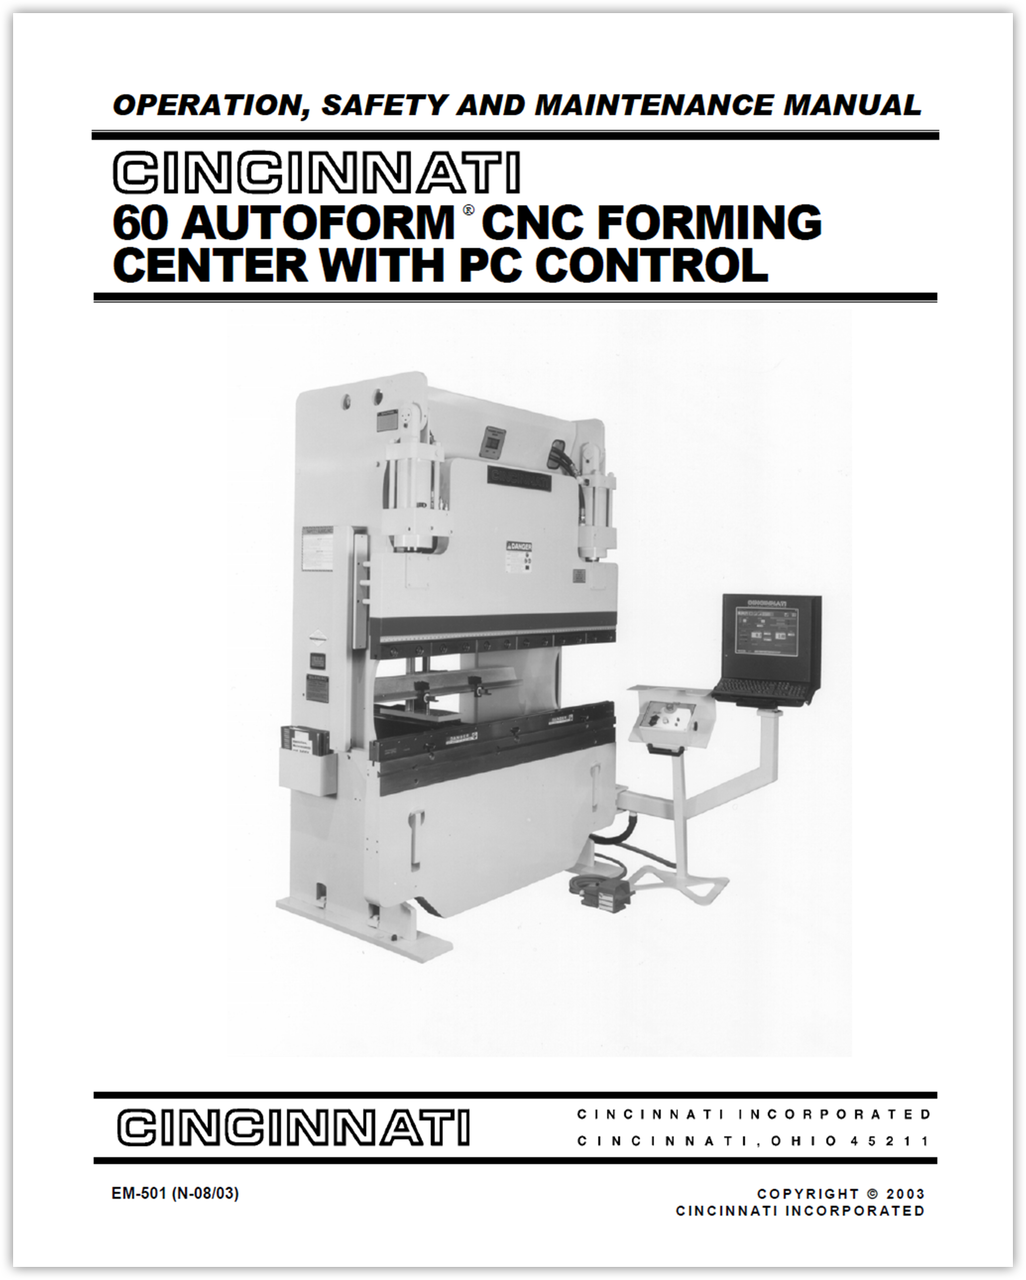 EM-501 (N-08-03) CINCINNATI 60 Autoform CNC Forming Center with PC Control - Operation, Safety and Maintenance Manual